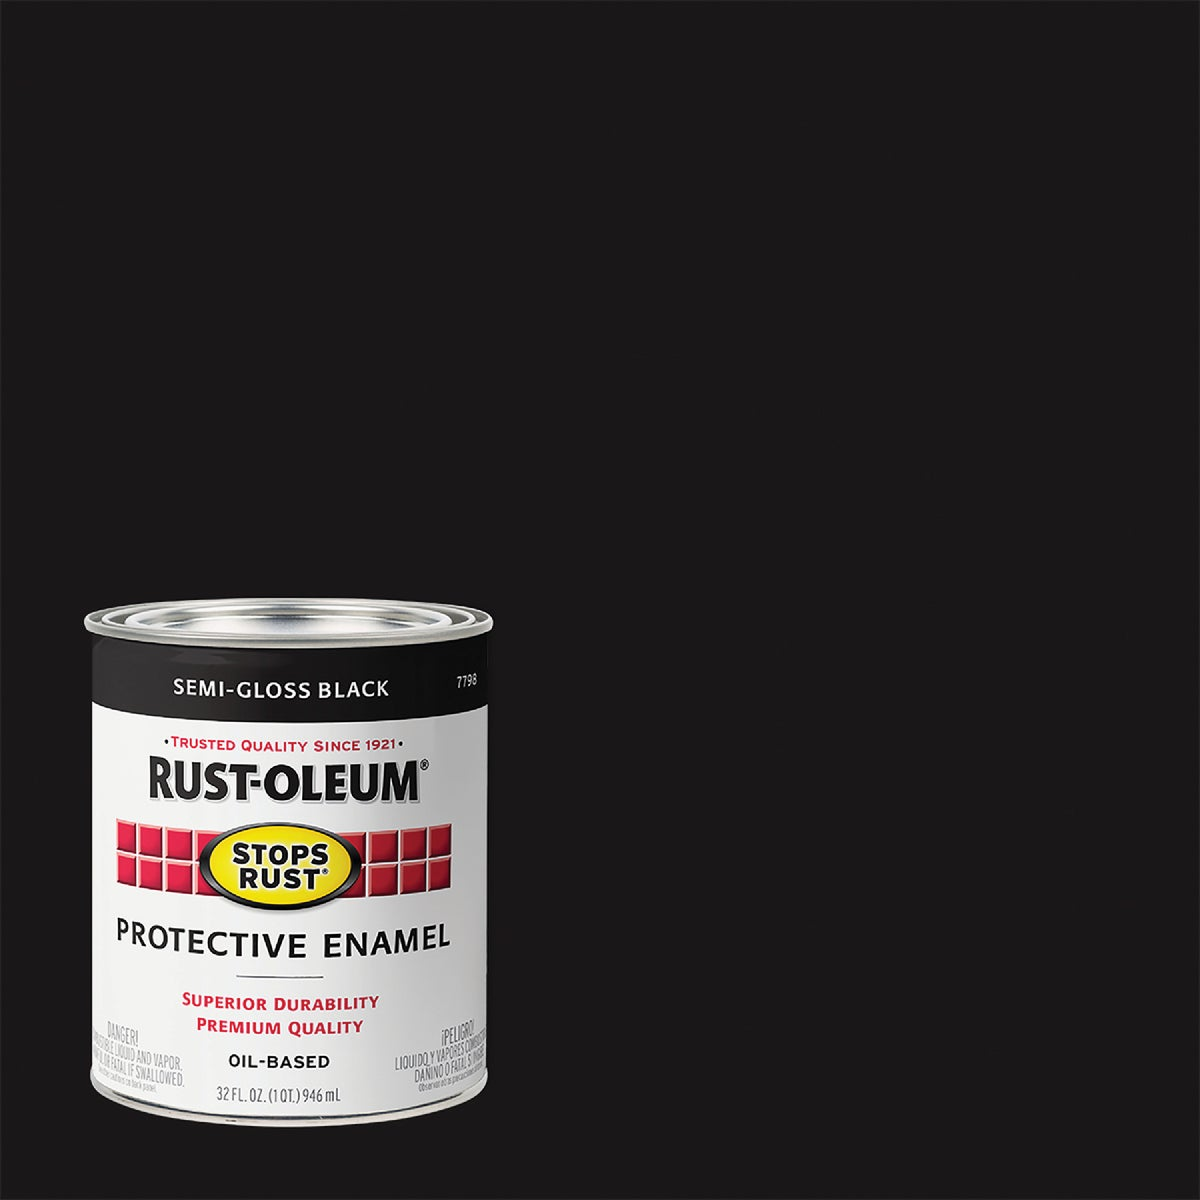 S/G BLACK ENAMEL - 7798-502 by Rustoleum